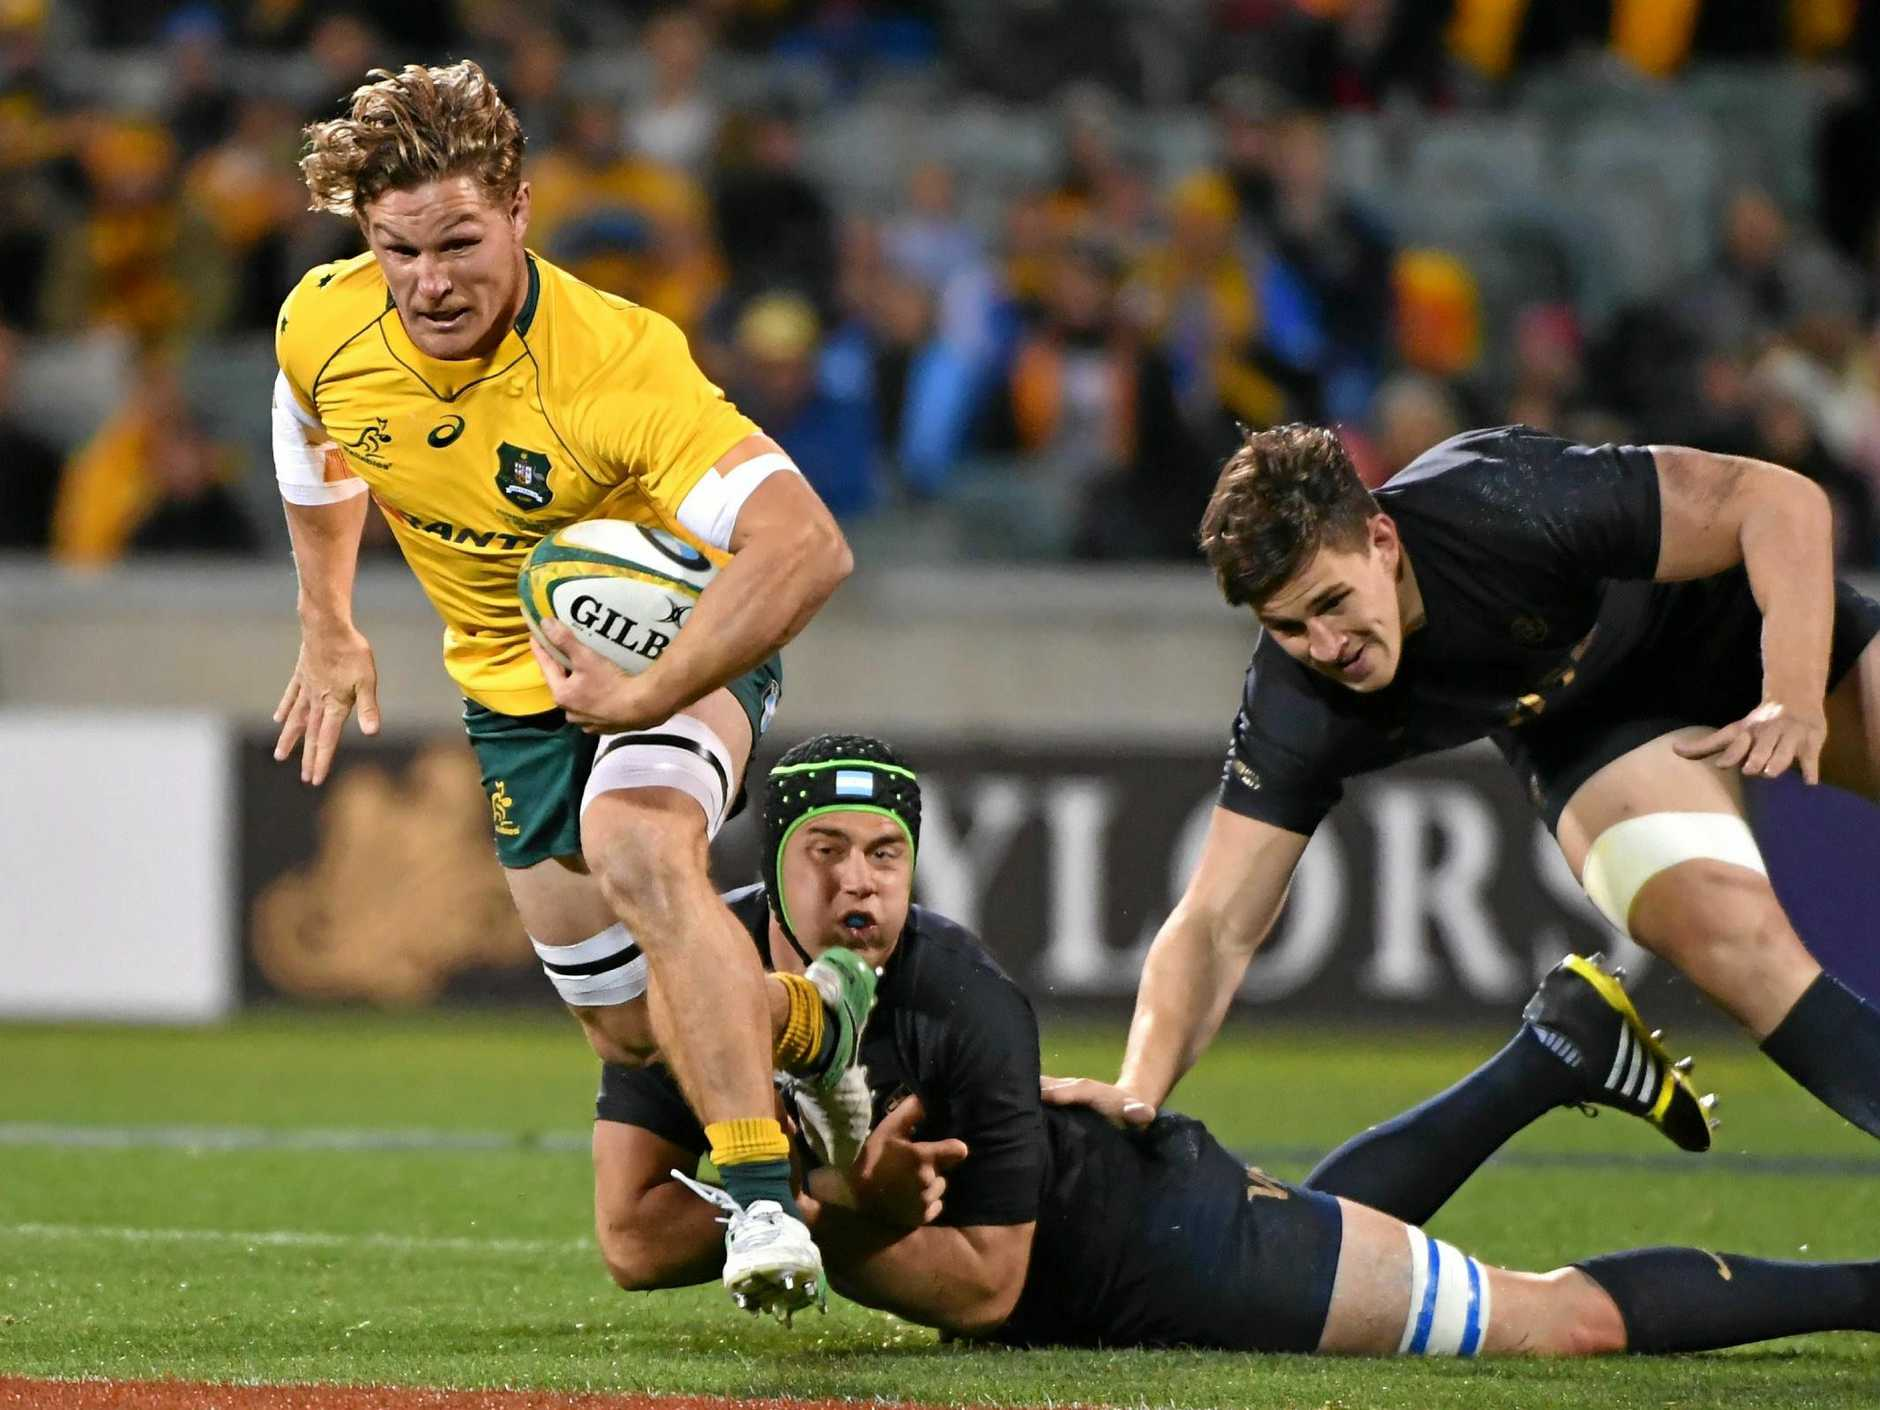 Michael Hooper of the Wallabies makes a break during the Rugby Championship match between the Australian Wallabies and the Argentina Pumas at GIO in Canberra, Saturday, September 16, 2017. (AAP Image/Mick Tsikas) NO ARCHIVING, EDITORIAL USE ONLY